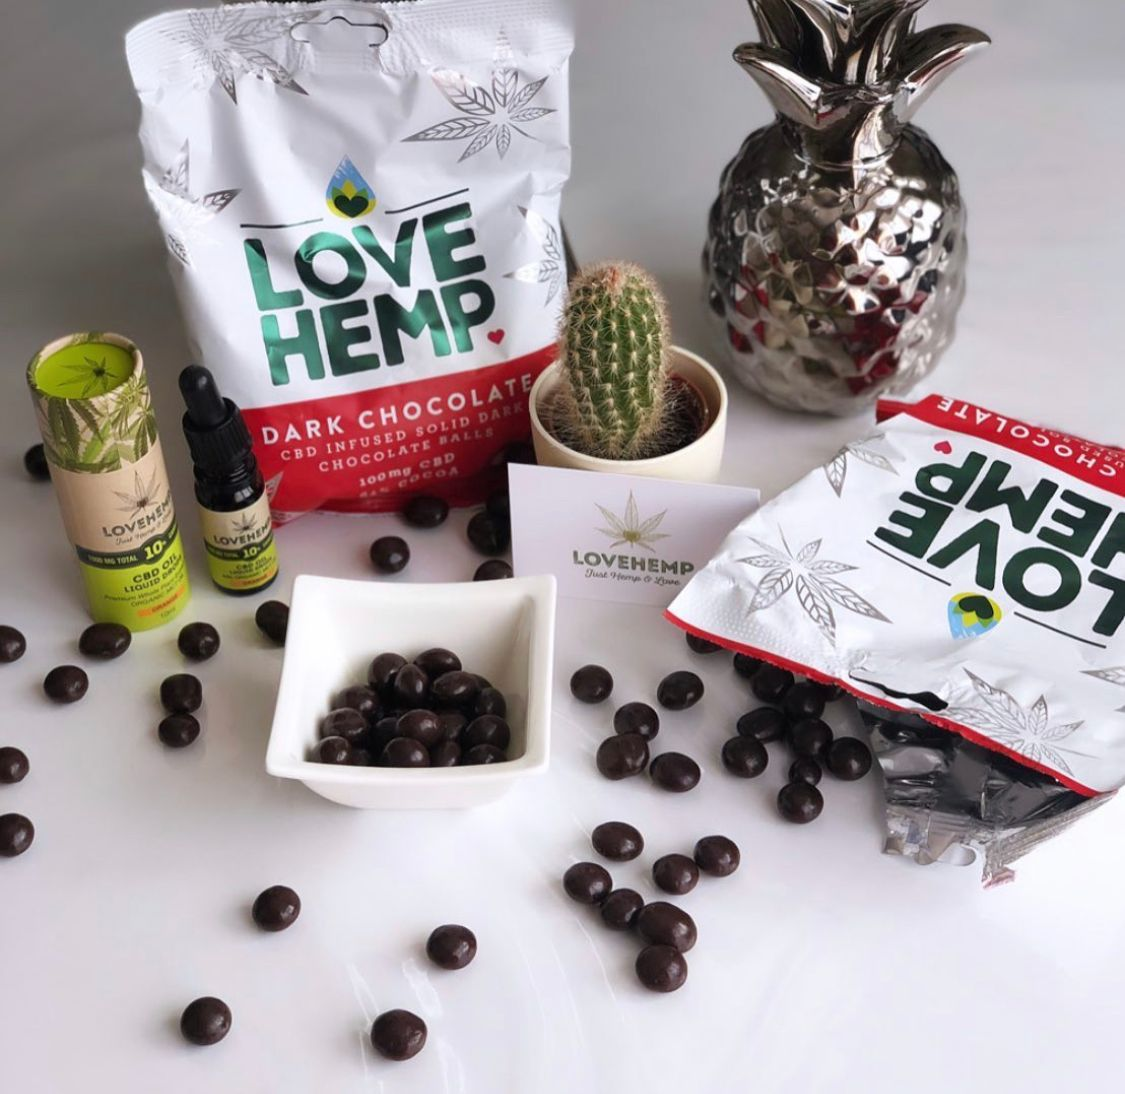 It's #WorldChocolateDay! 🍫There's no better way to celebrate than sharing your favourite treats, and our family sized bag of CBD Infused Chocolate Bites are perfect for that! Order yours today 👉 https://t.co/RWFS1KZJLu https://t.co/g93FhqrG5x